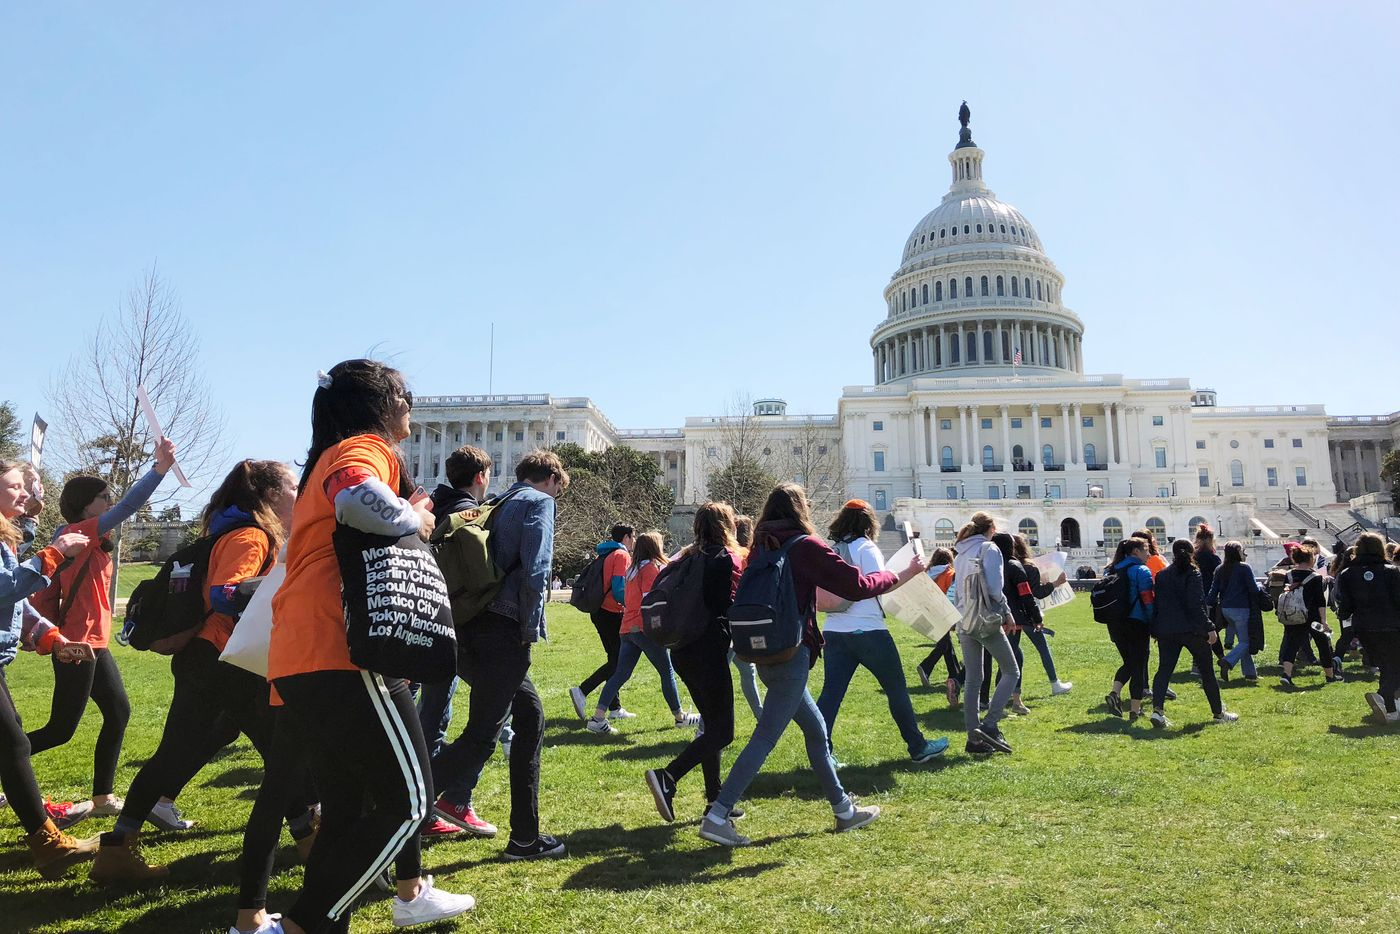 Students at the Capitol during the National Walkout in Washington, D.C. on April 20, 2018. Photo: Michael Robinson Chavez/The Washington Post/Getty Images